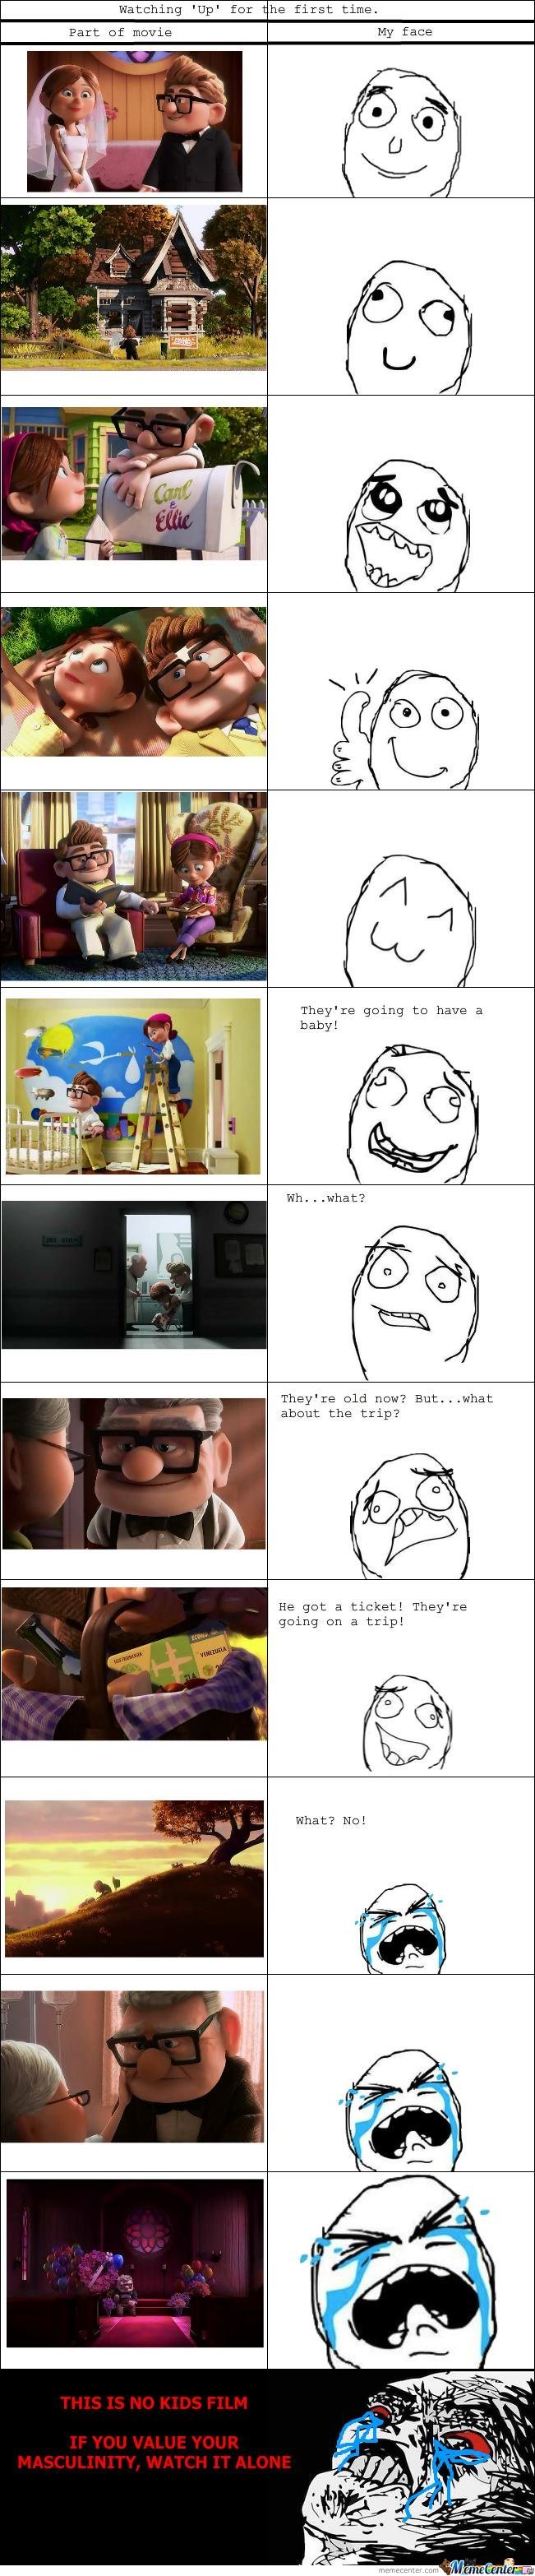 Up - Not a movie for manly men